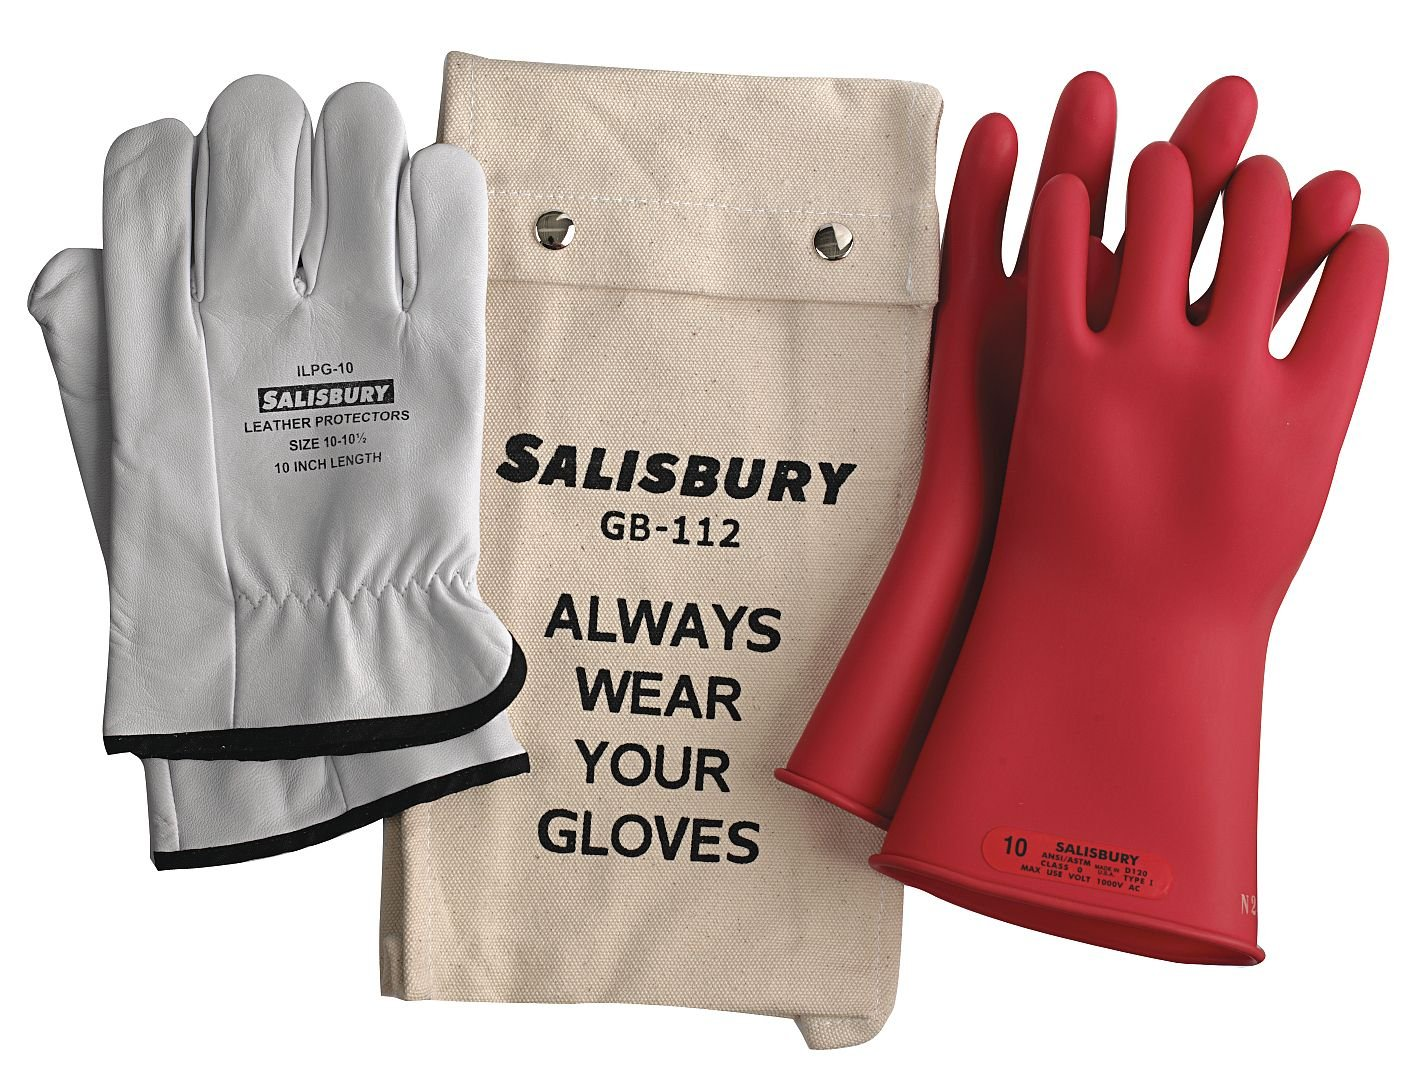 Salisbury by Honeywell GK011R10 Insulated Glove Kit, Class 0, Red, 11''L, Size 10; One Pair